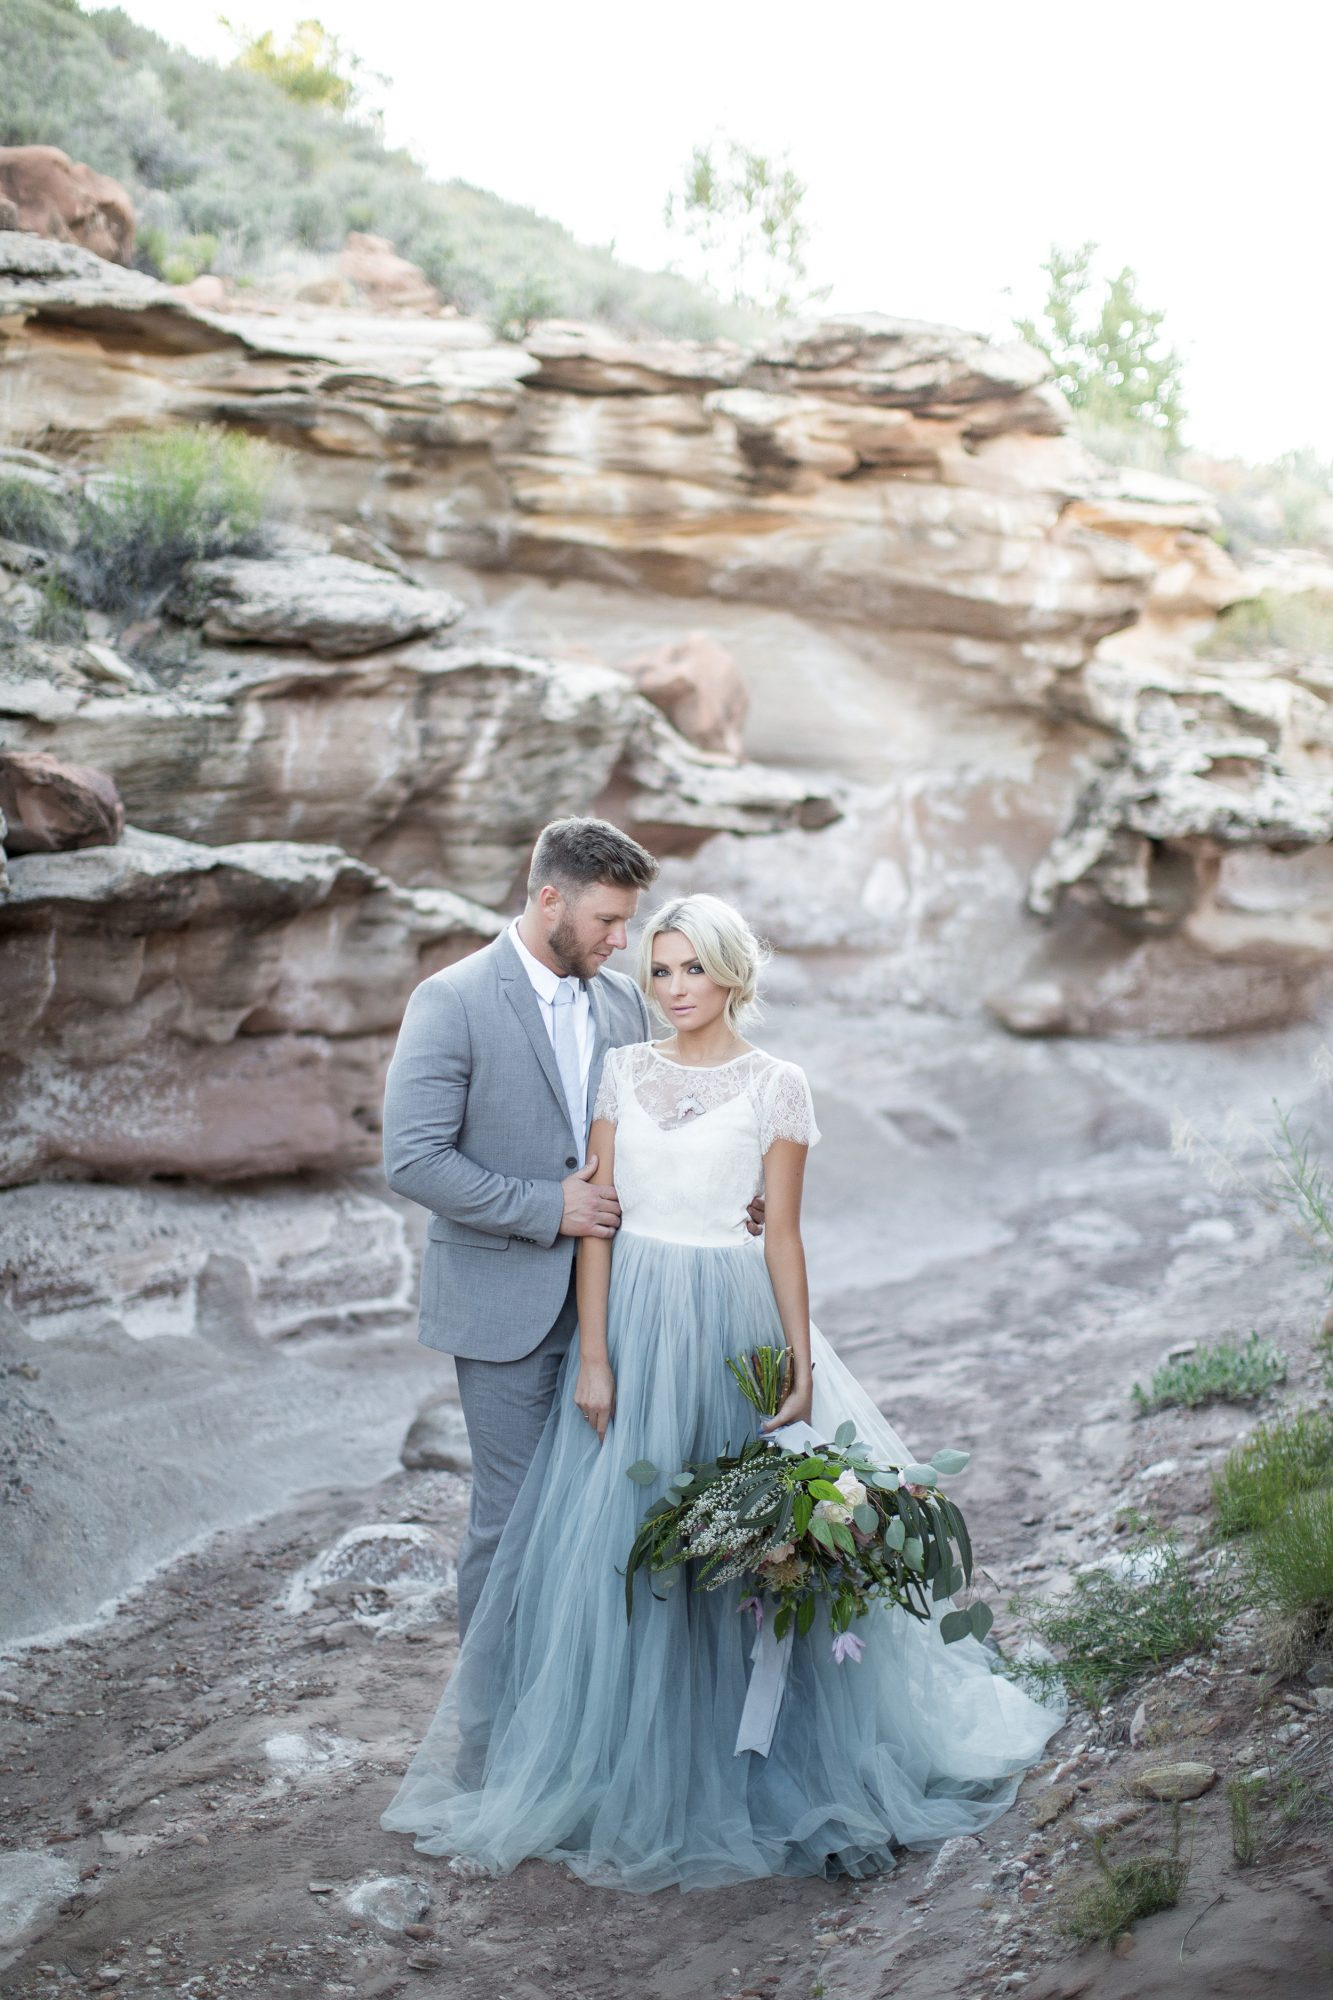 two-toned wedding dress with white top and blue tulle bottom